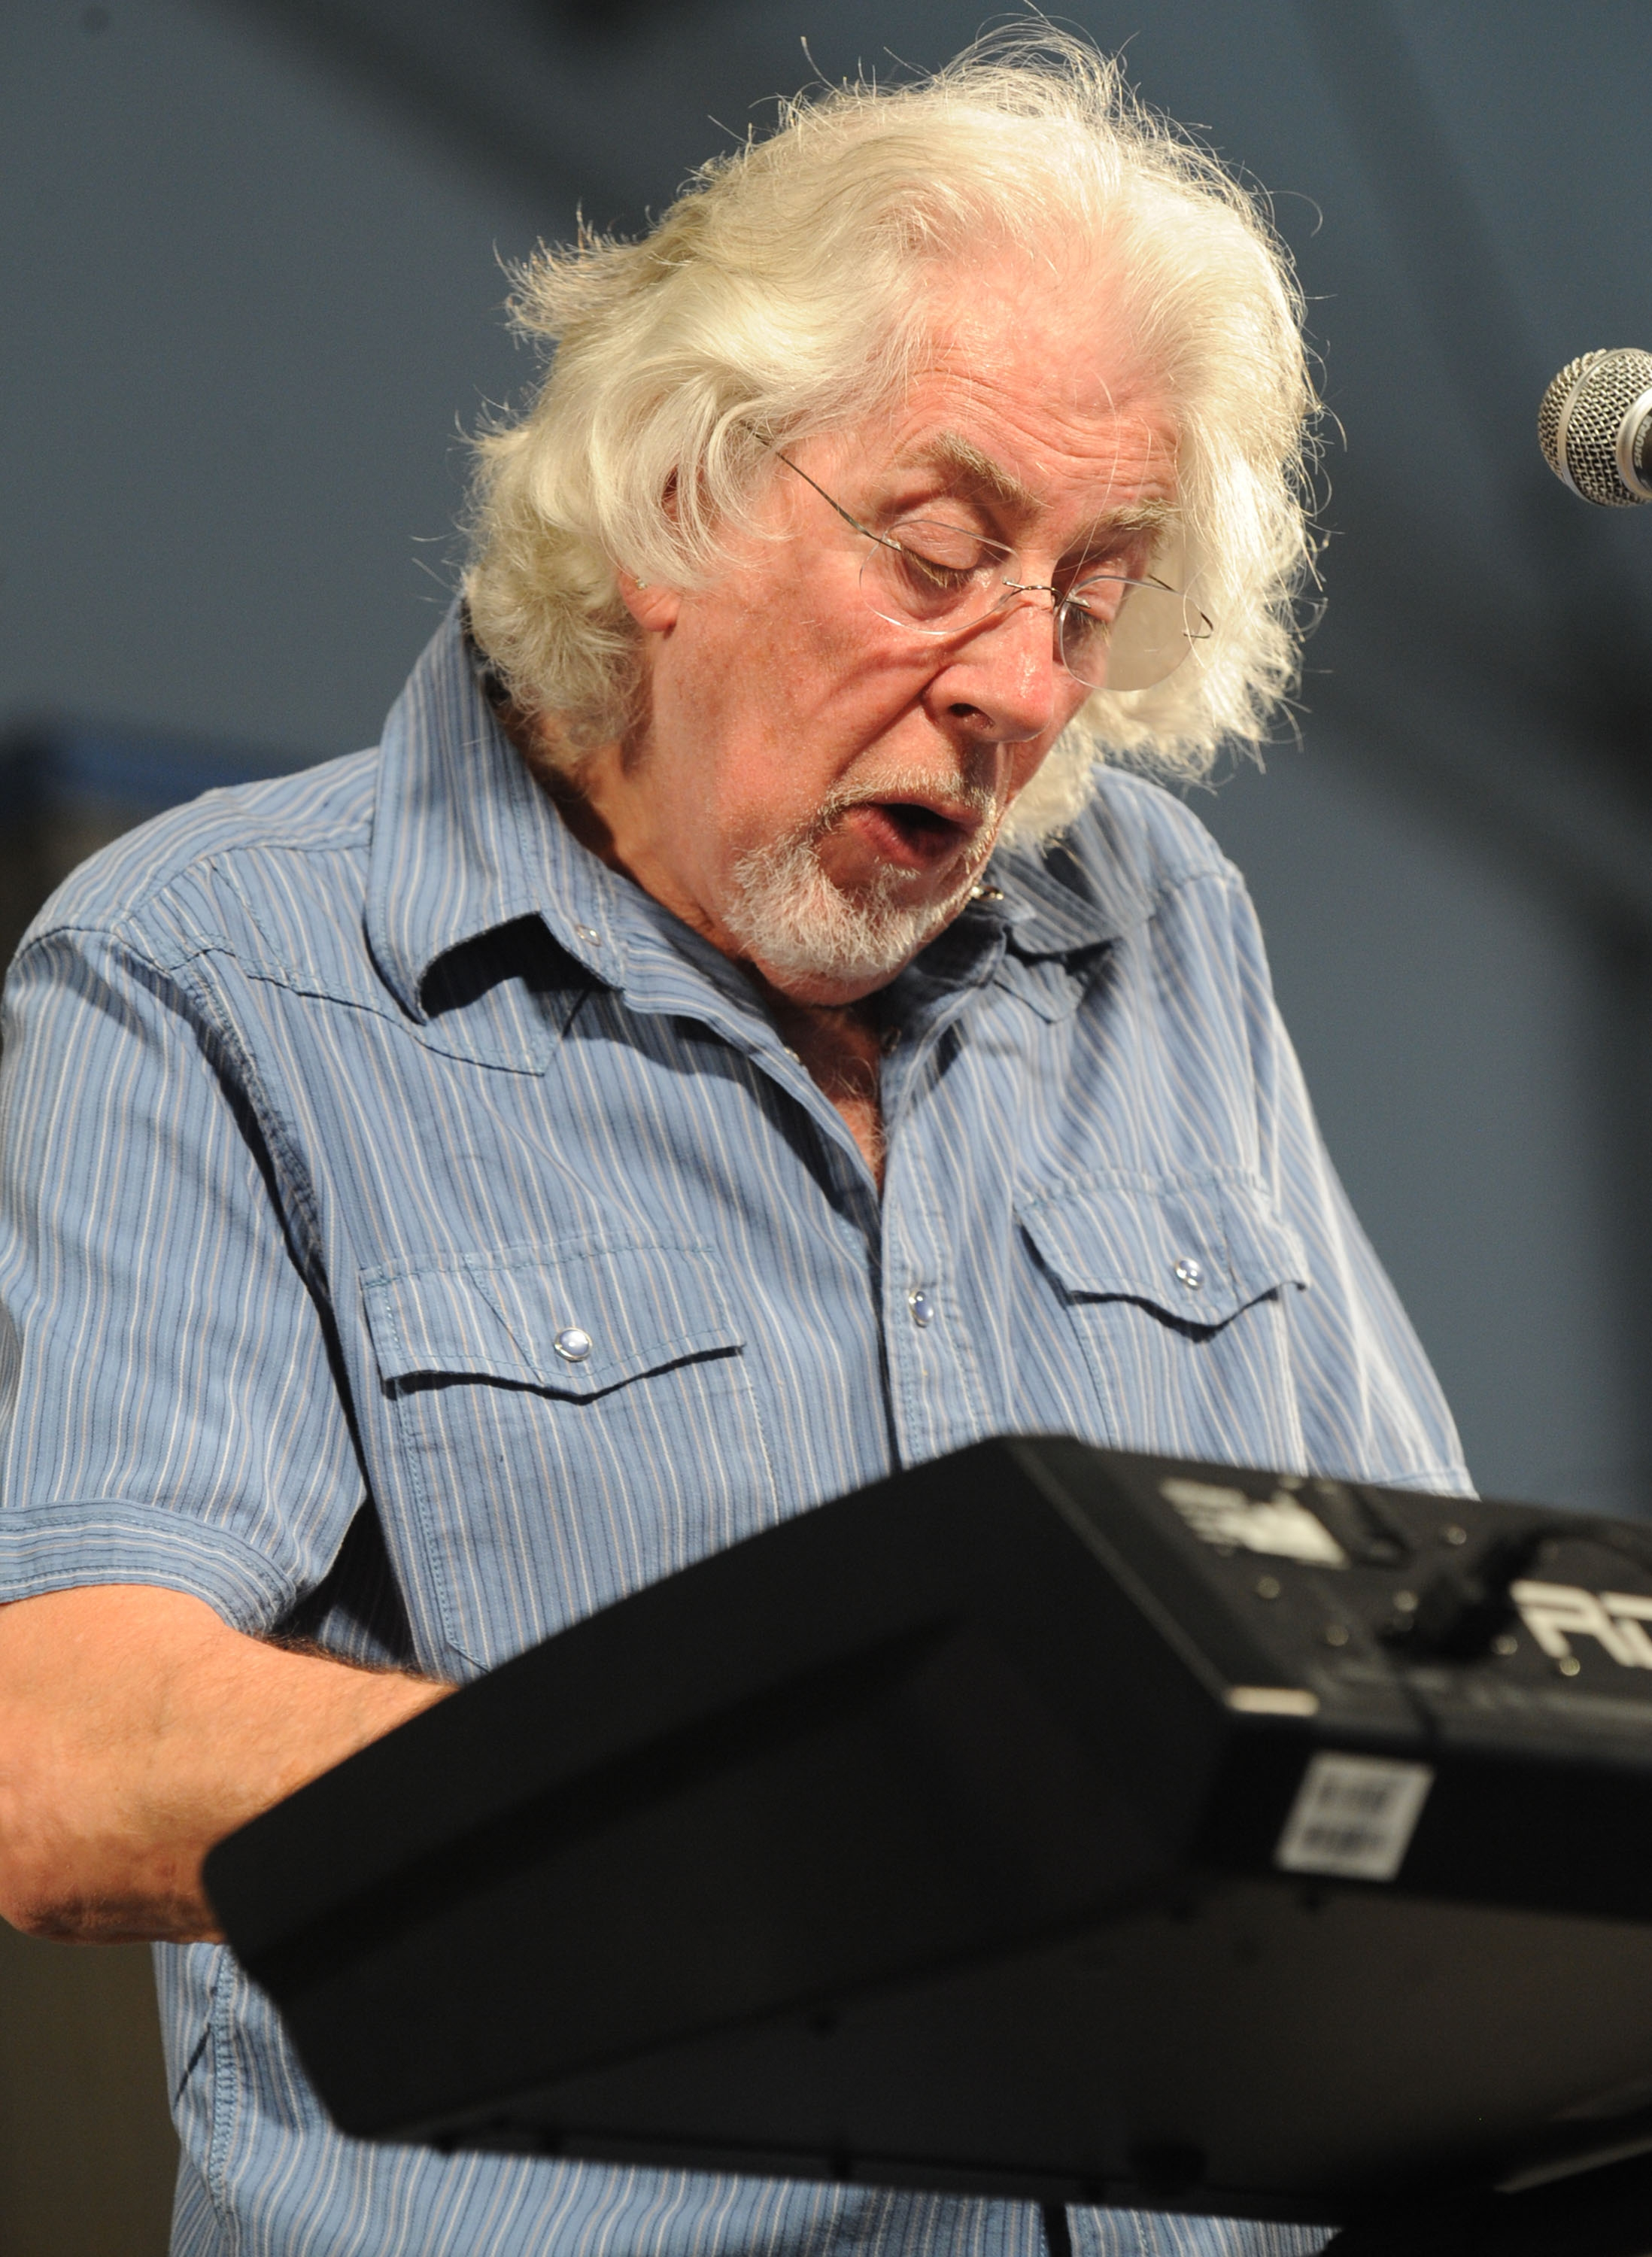 British blues legend John Mayall brings the latest version of the Bluesbreakers to the Old Falls Street stage Saturday evening.